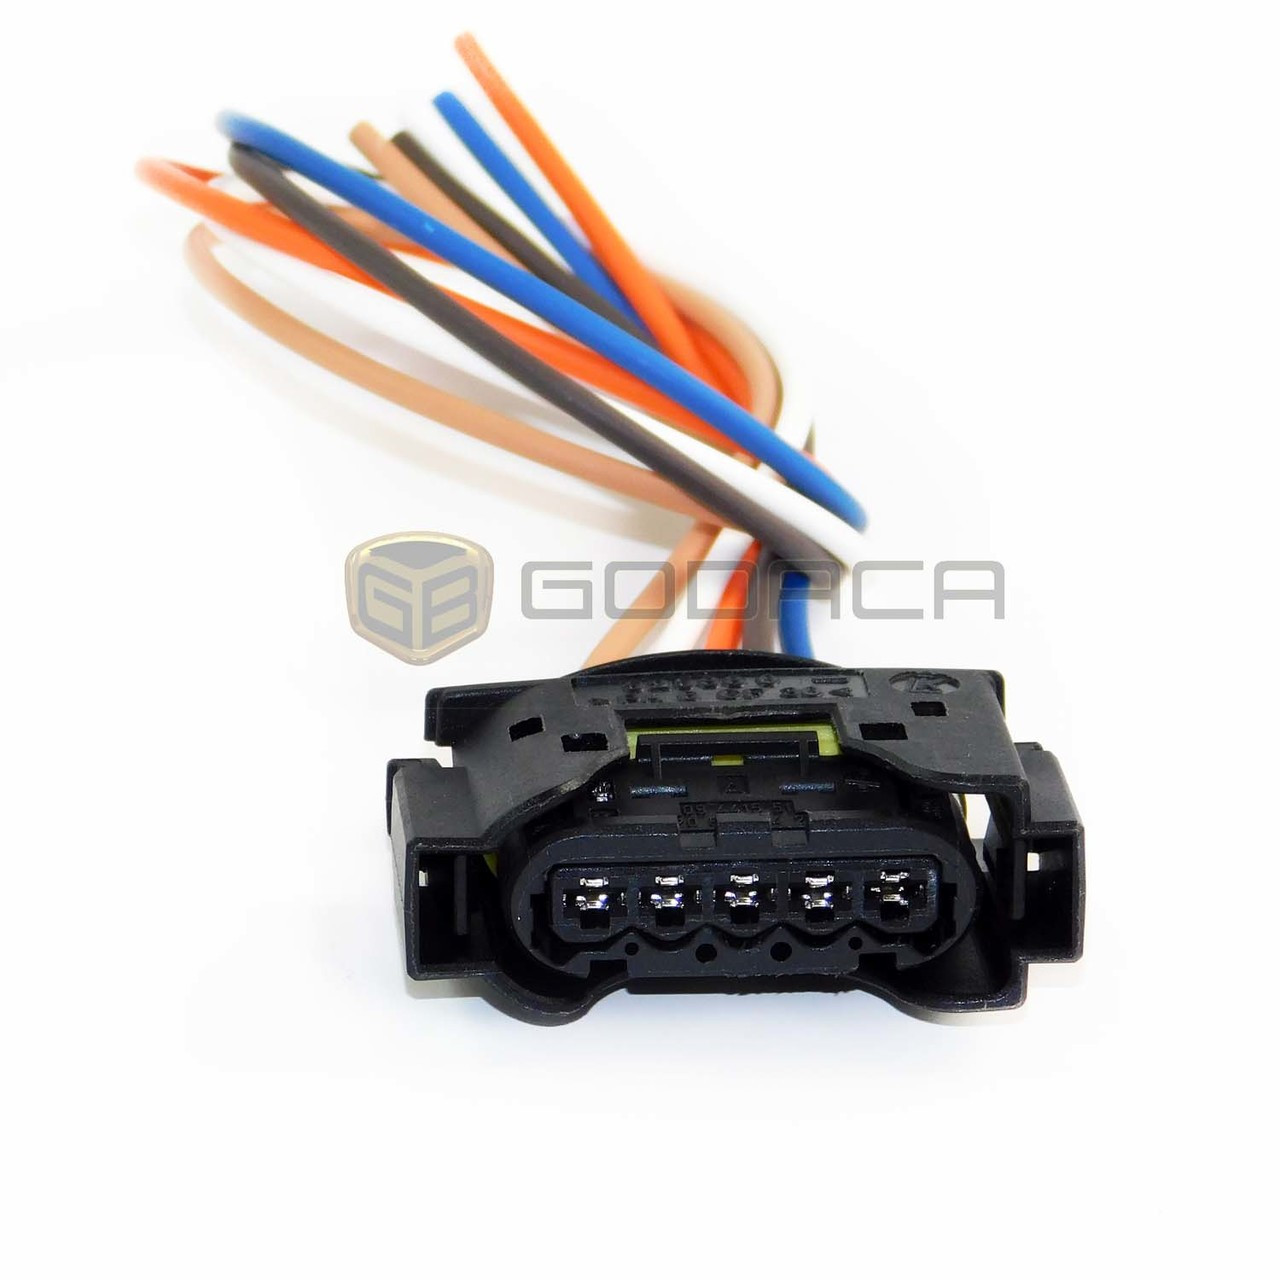 1x connector 5 way 5 pin for mercedes benz preheater a 2205450429 [ 1280 x 1280 Pixel ]